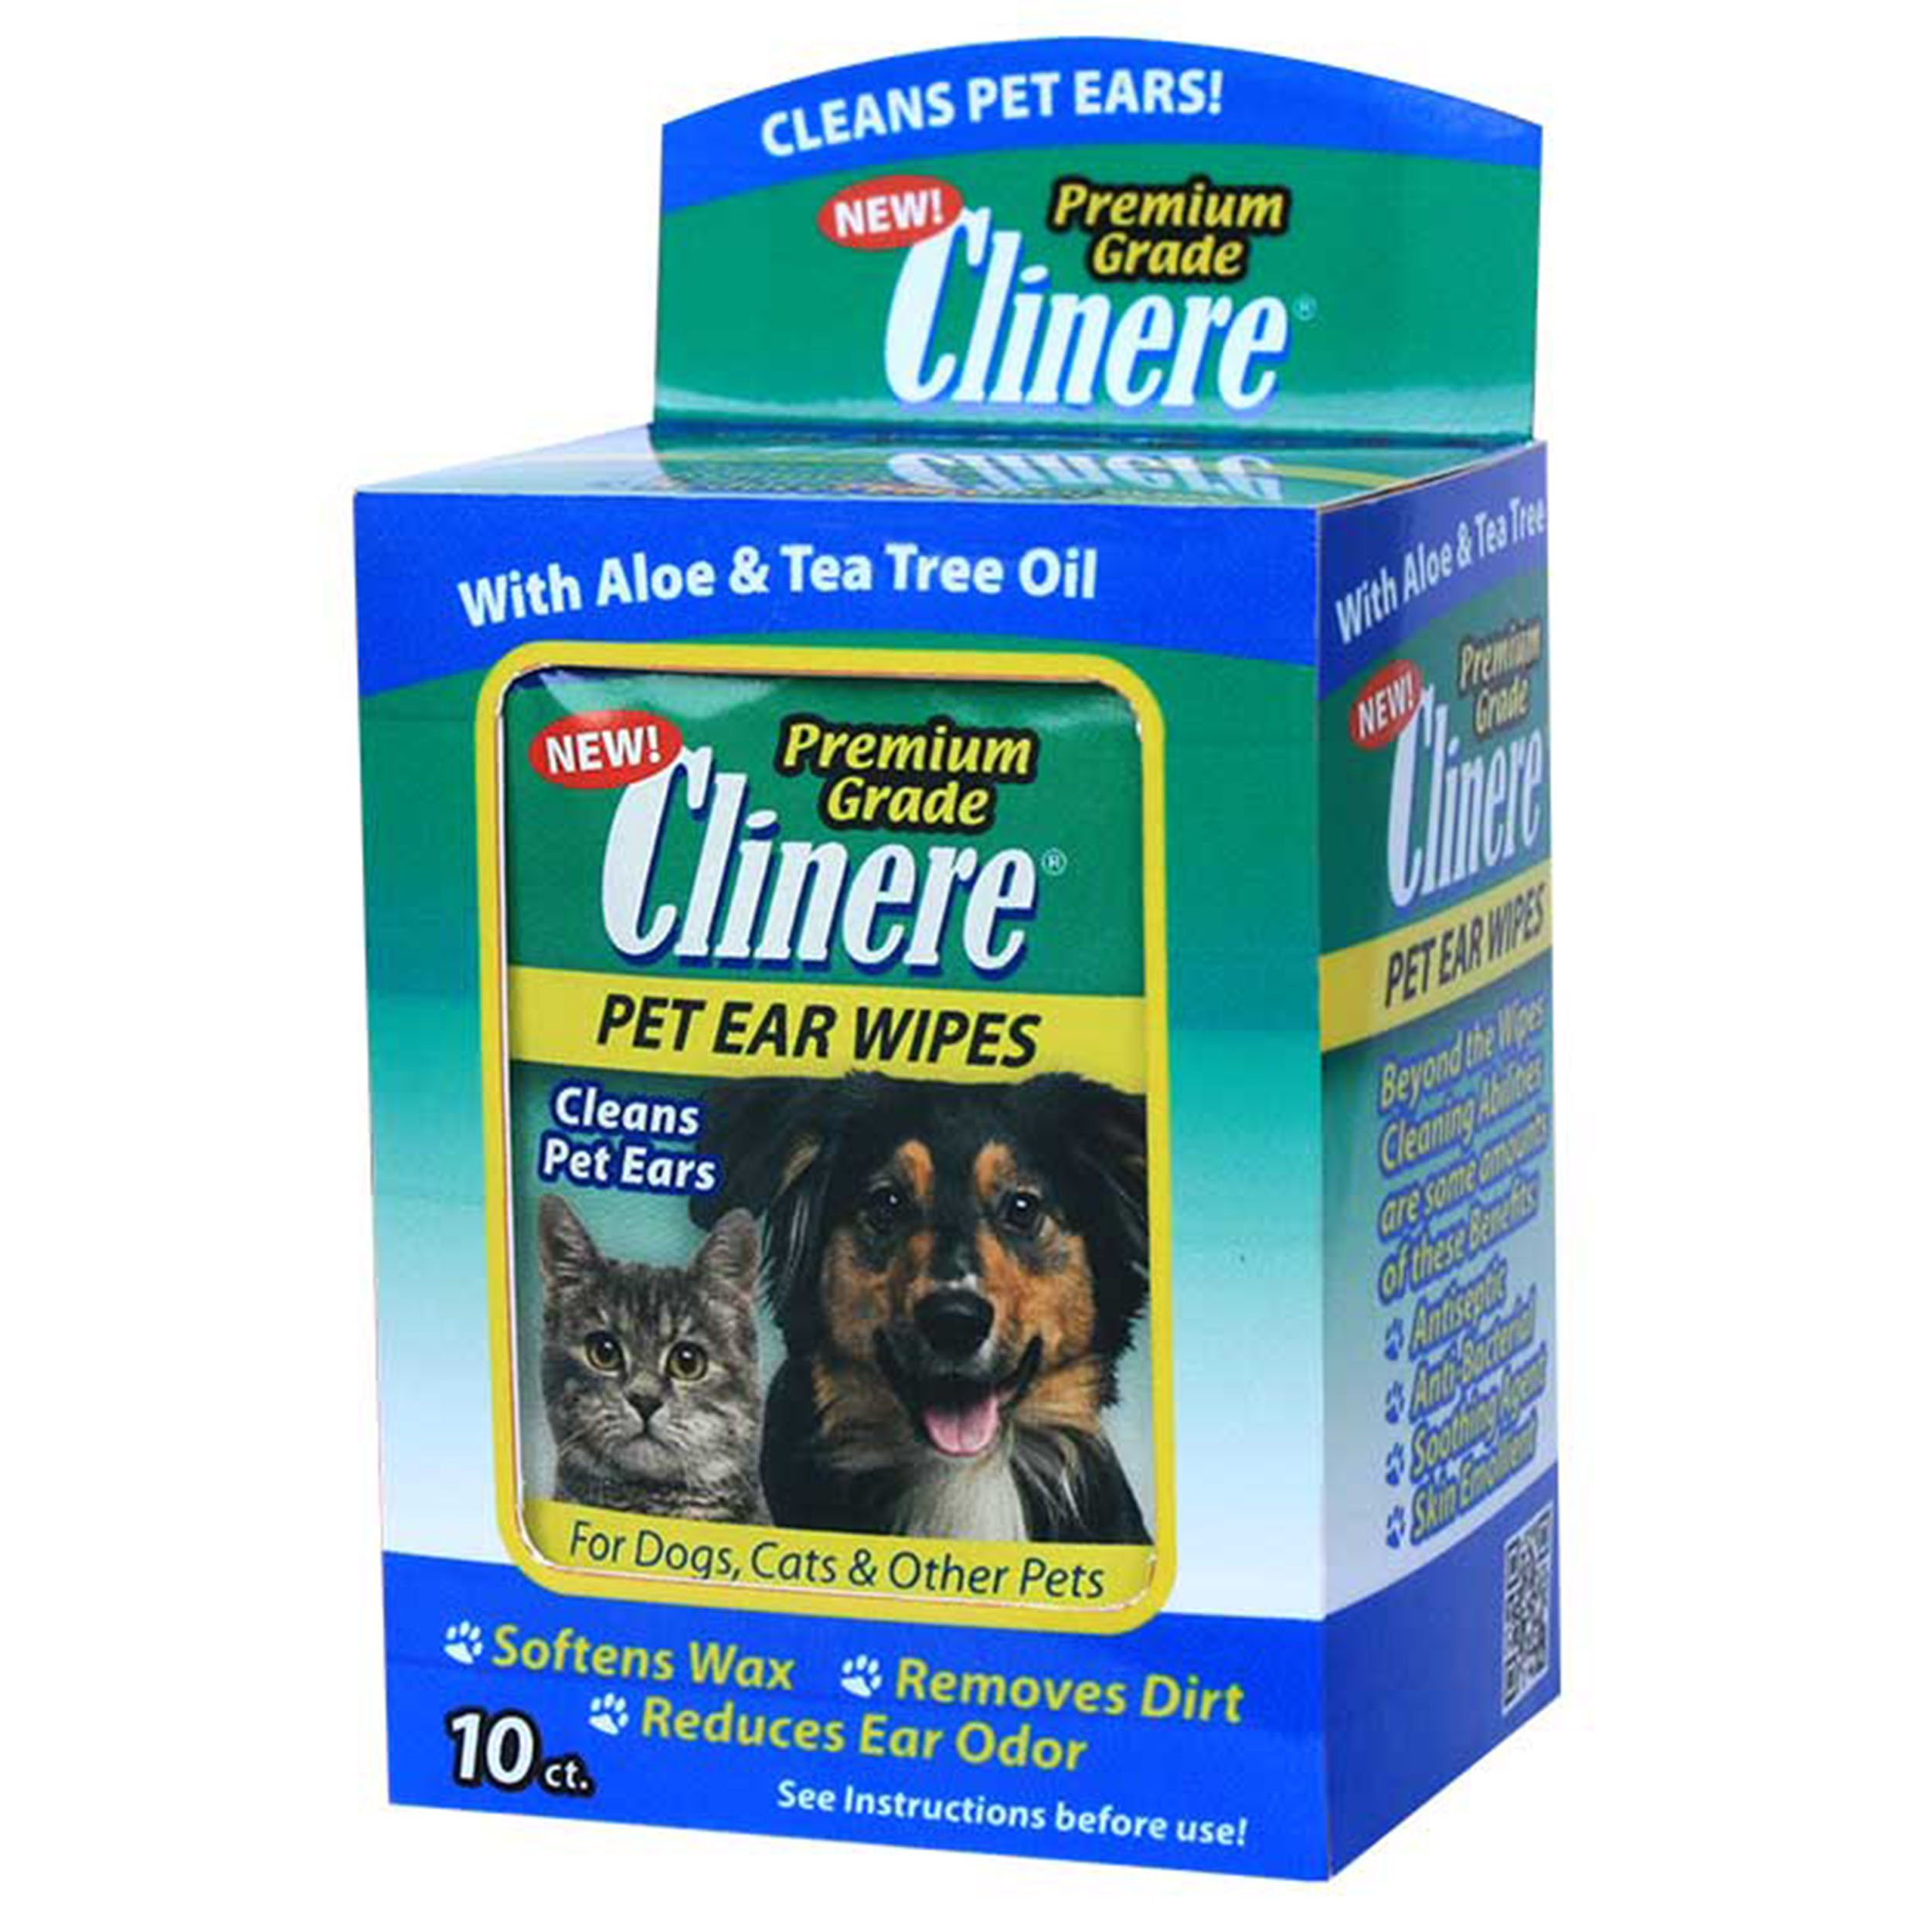 Clinere 10 Count Pet Ear Cleaning Wipes, 5'' x 4.5'', White